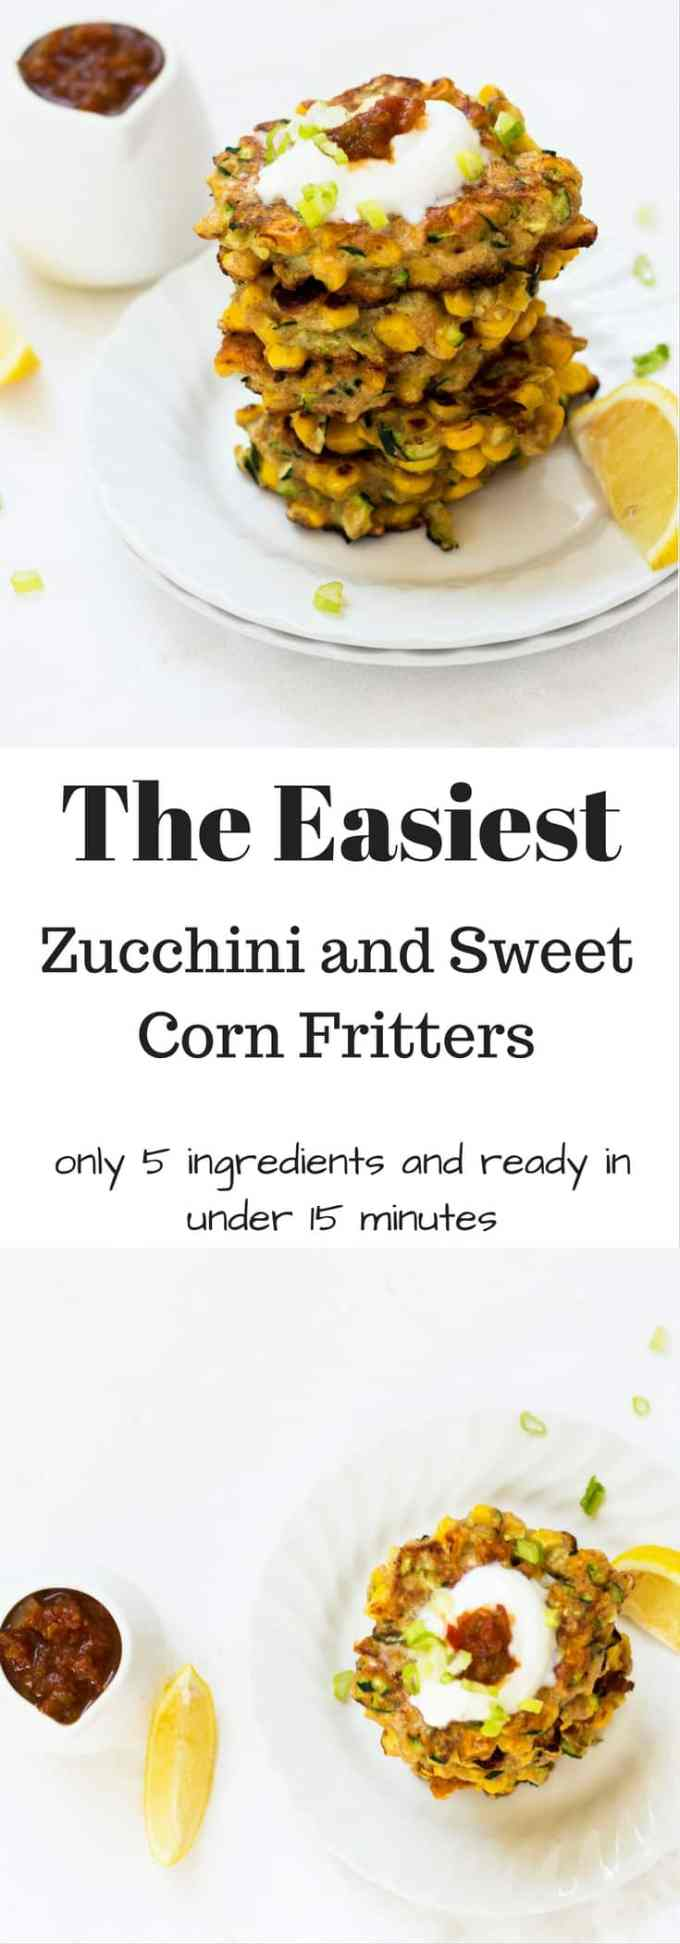 Zucchini and Sweet Corn Fritters Recipe is a super quick snack to put together, with only 5 ingredients. Perfect snack for little bellies after a busy day